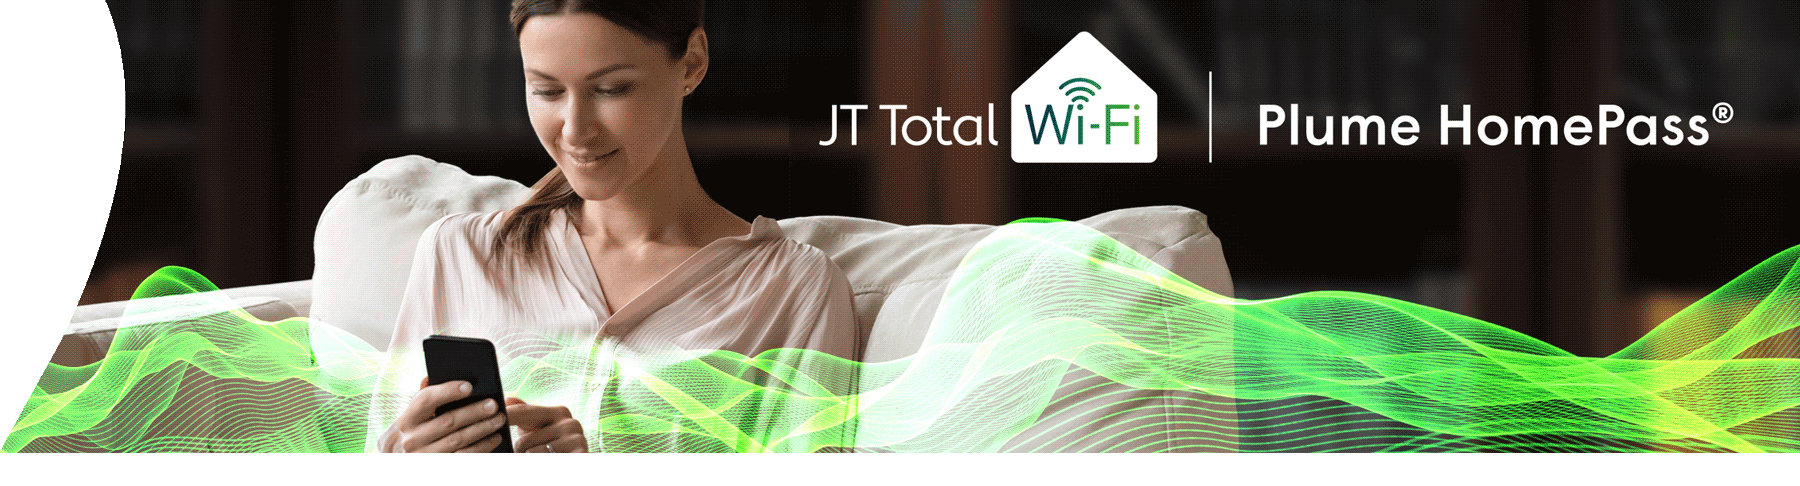 JT Total Wi-Fi Plume Homepass